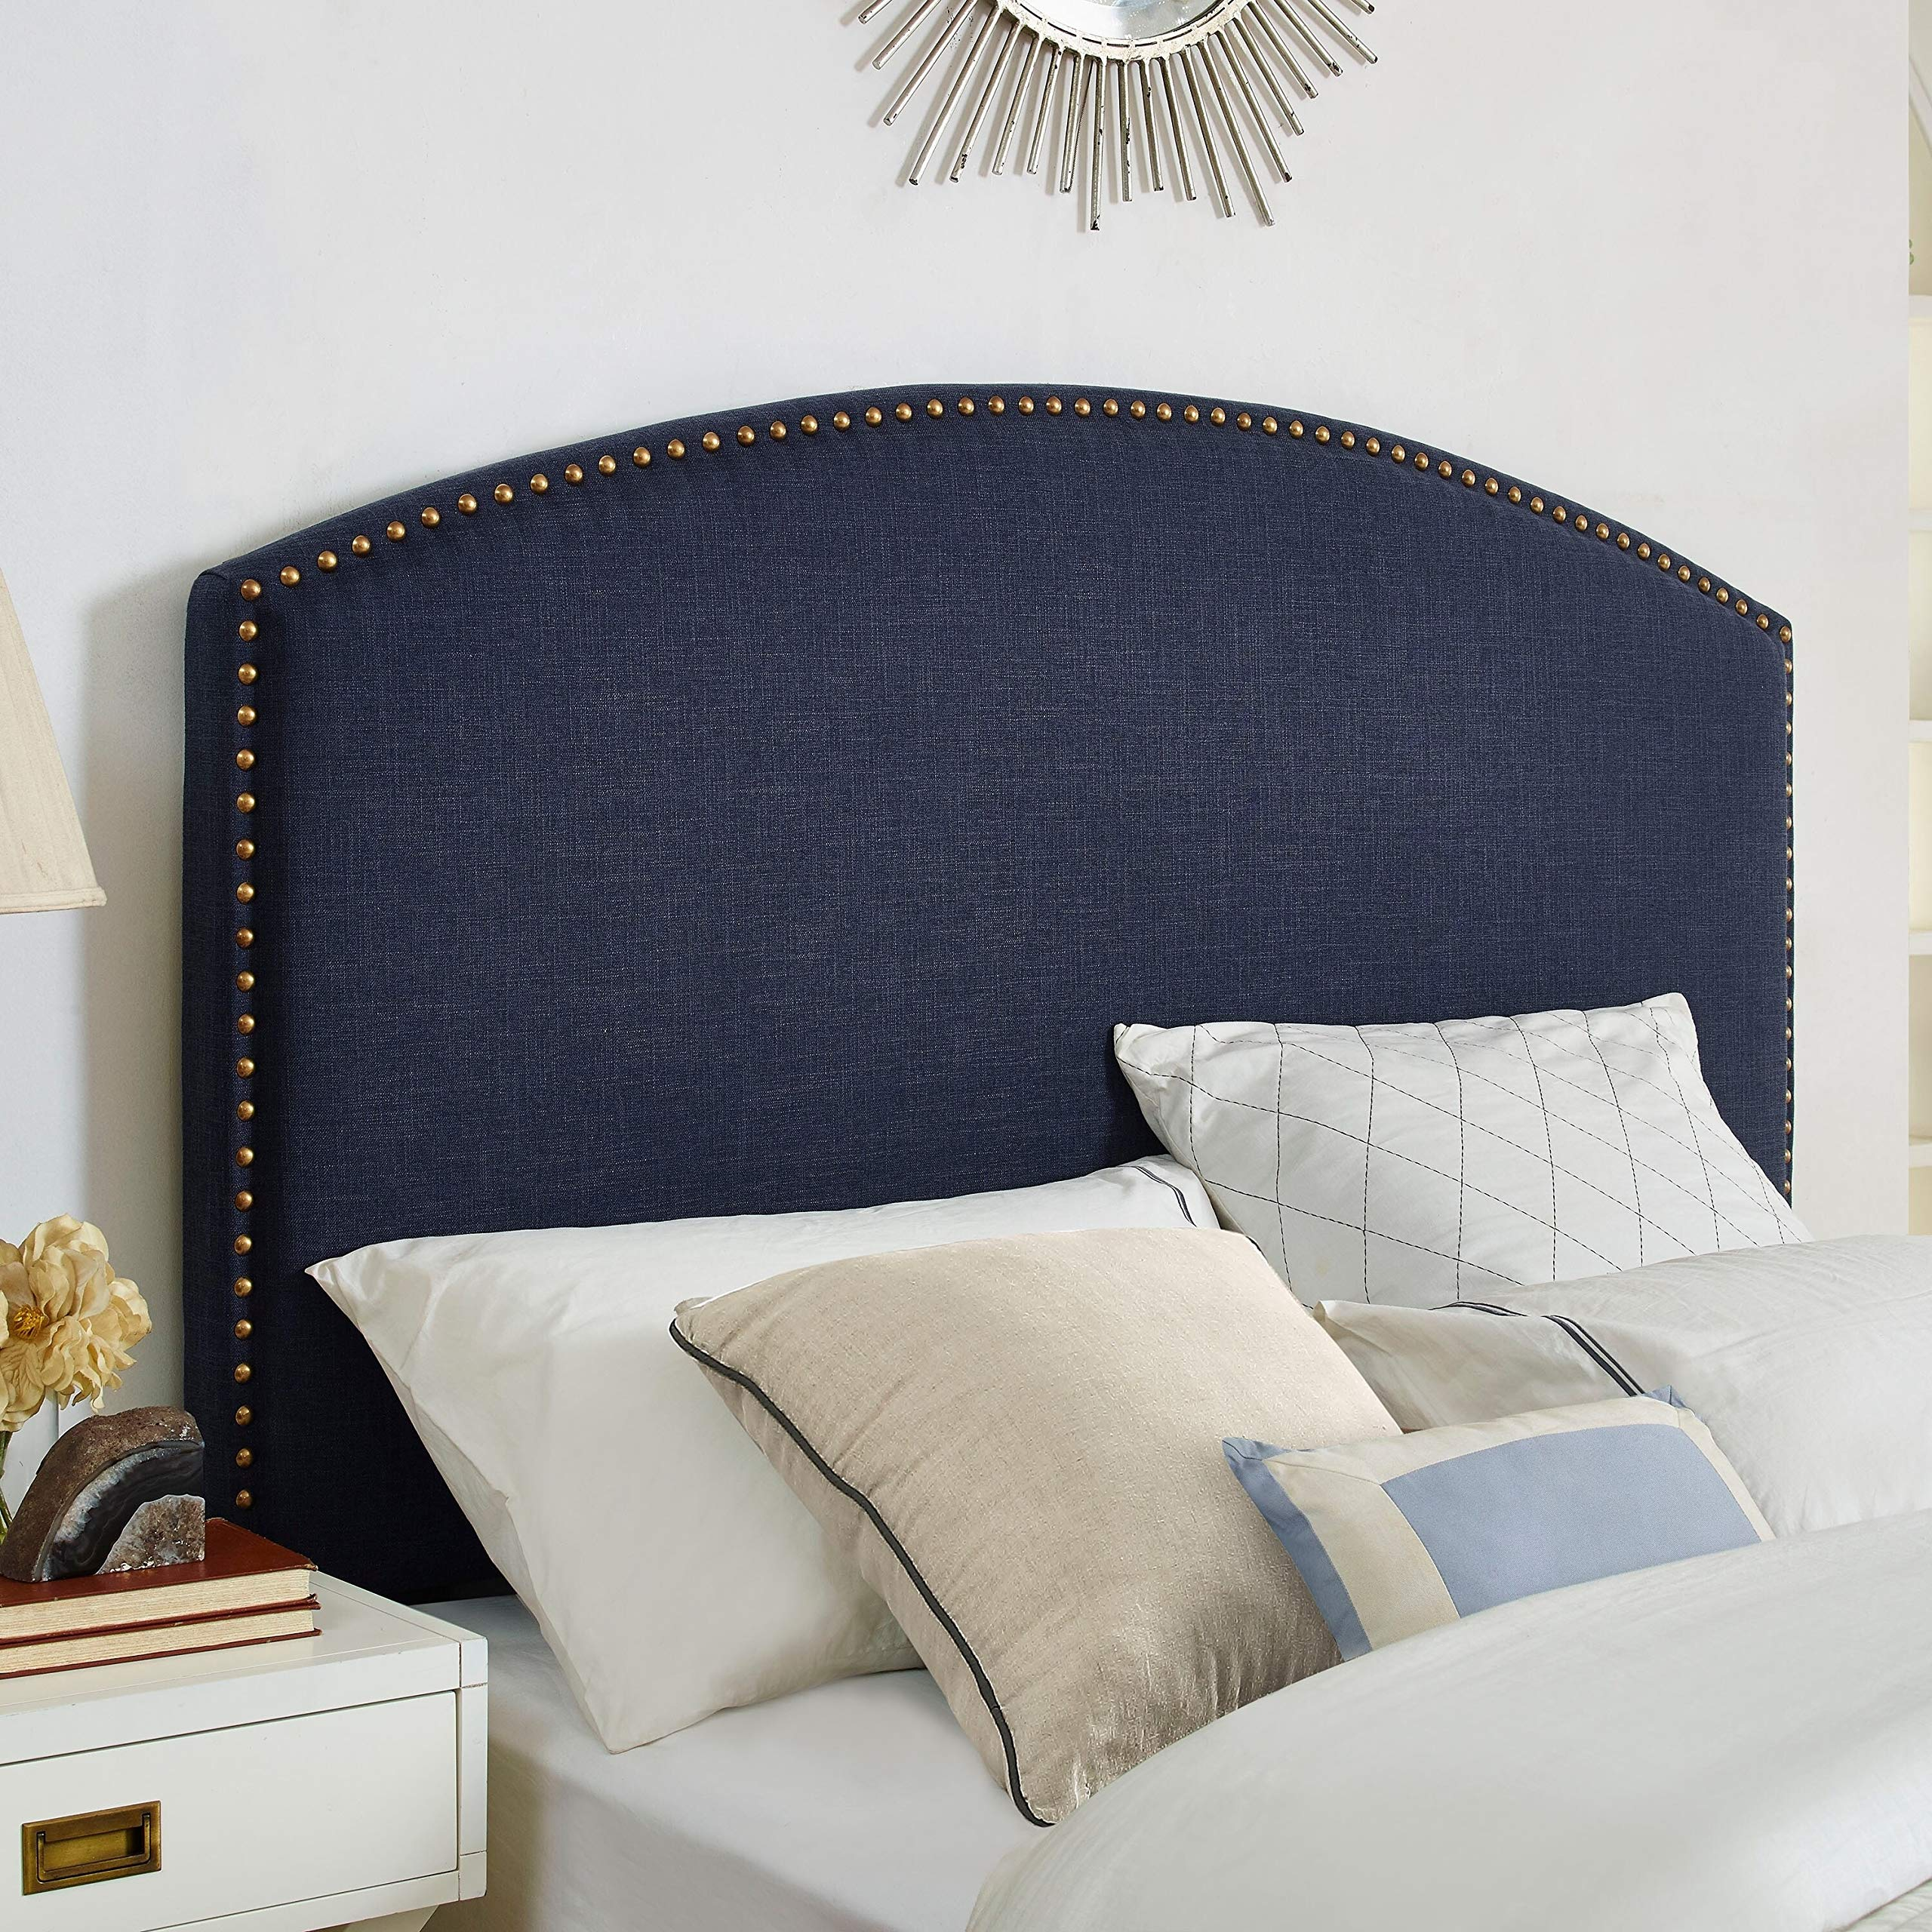 Cassie Curved Upholstered King/Cal King Headboard in Navy Linen Blue Traditional Nailhead by Unknown